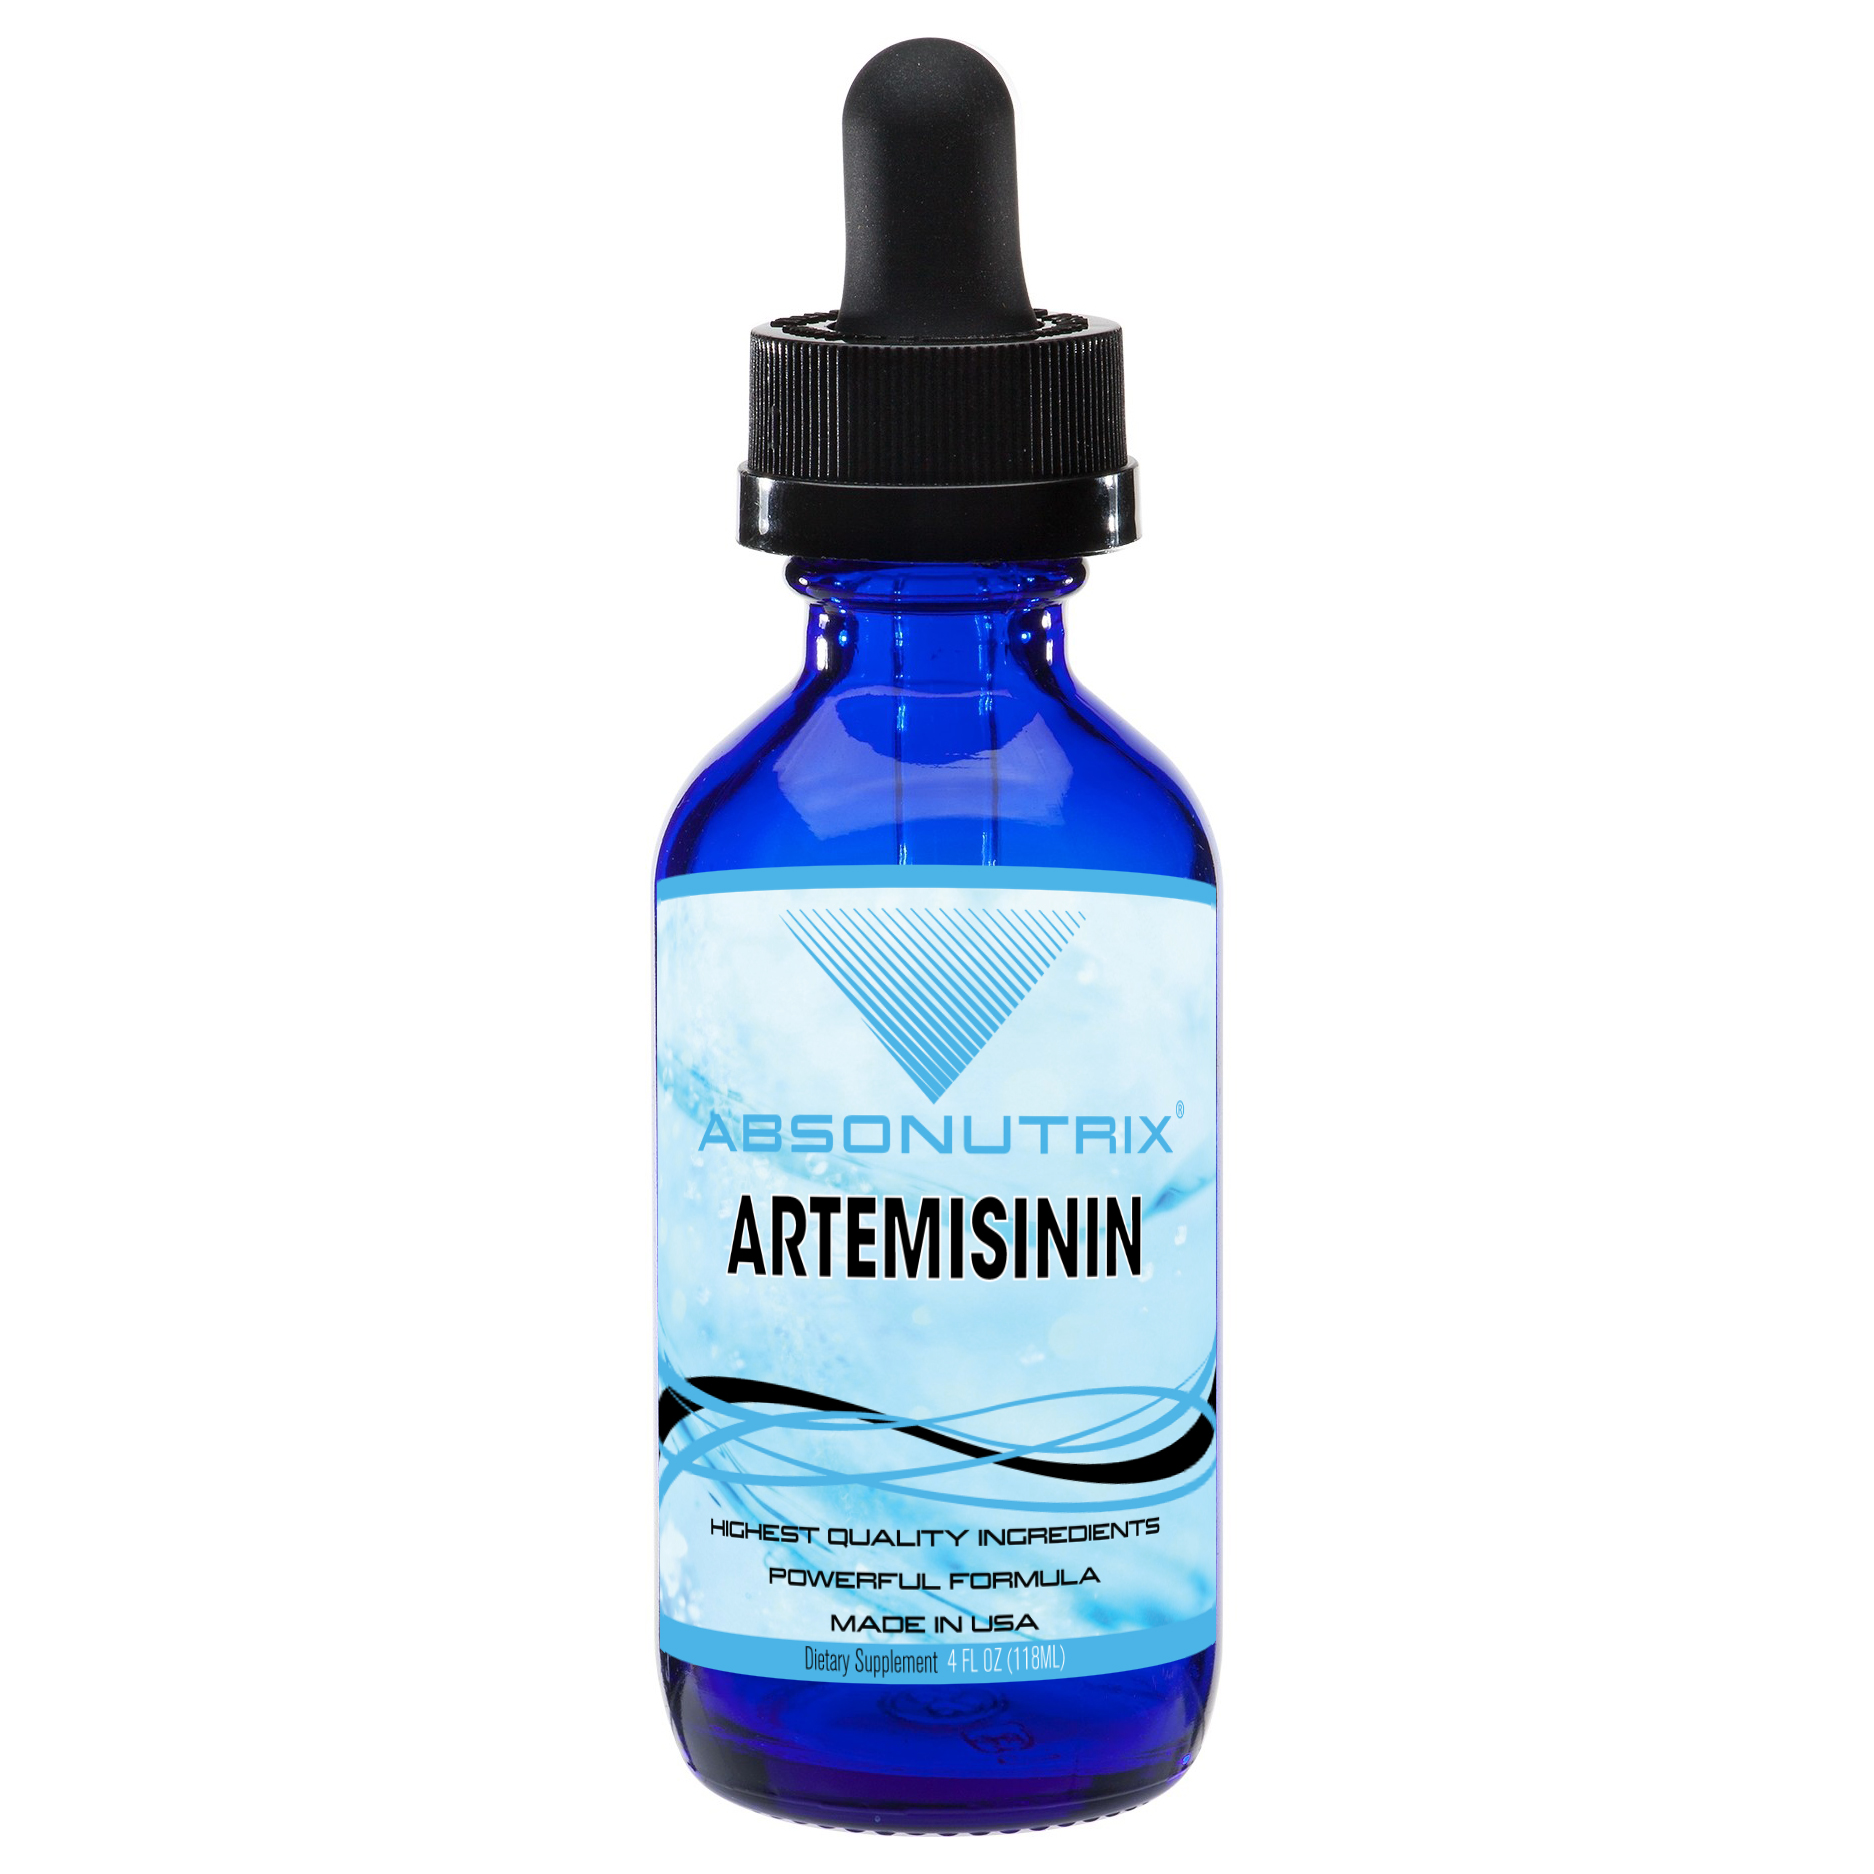 Absonutrix Artemisinin 539mg 4 Fl oz antioxidant helps control inflammation and protect against external agents